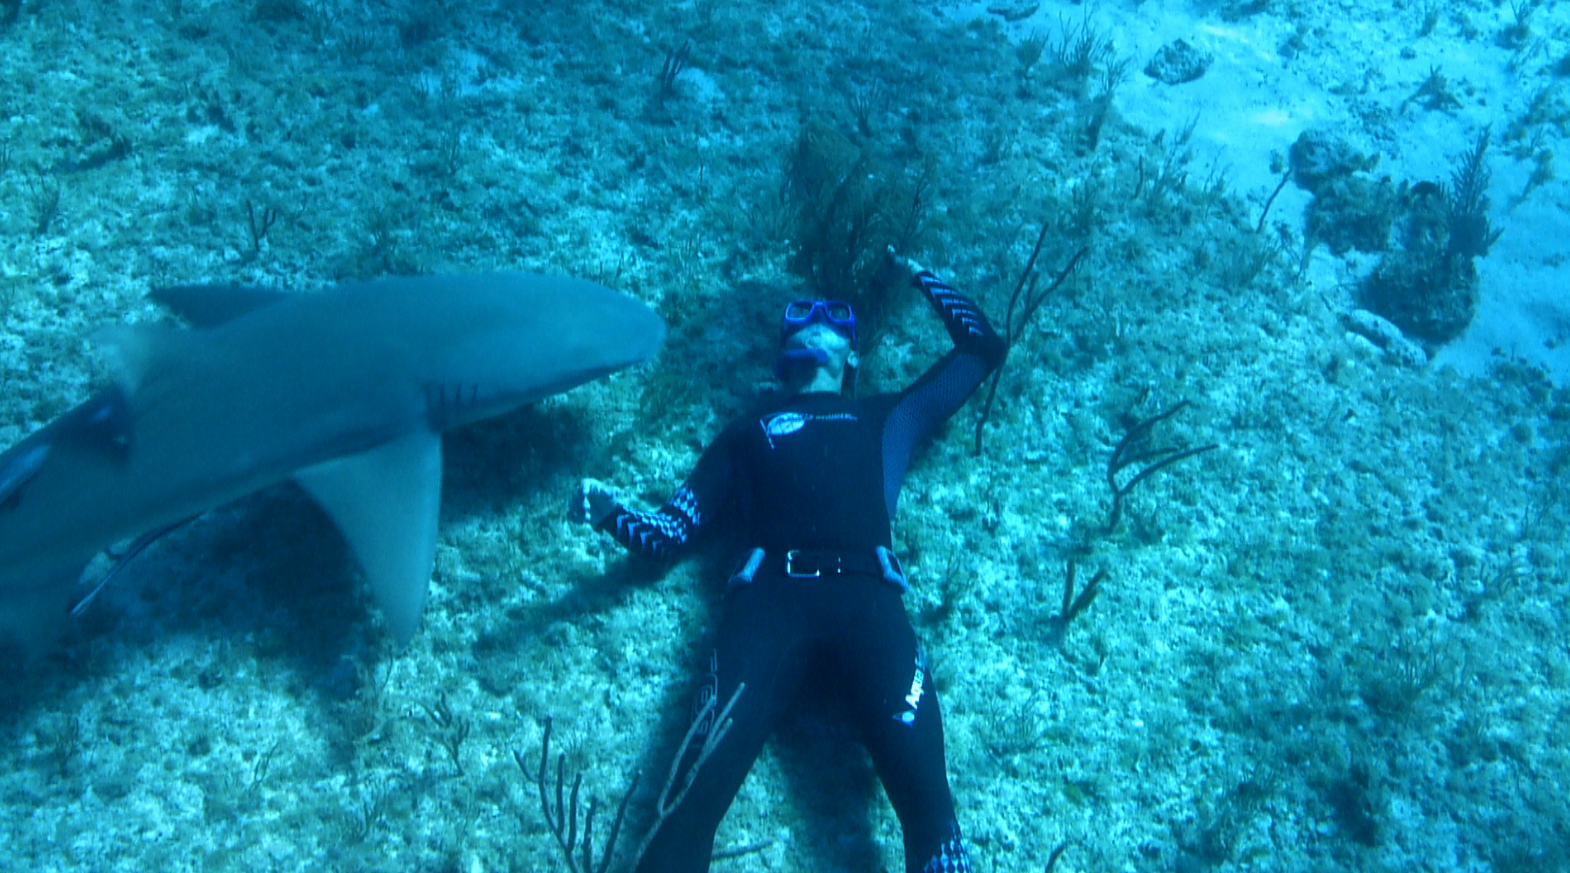 Pierre Frolla swimming close to a shark